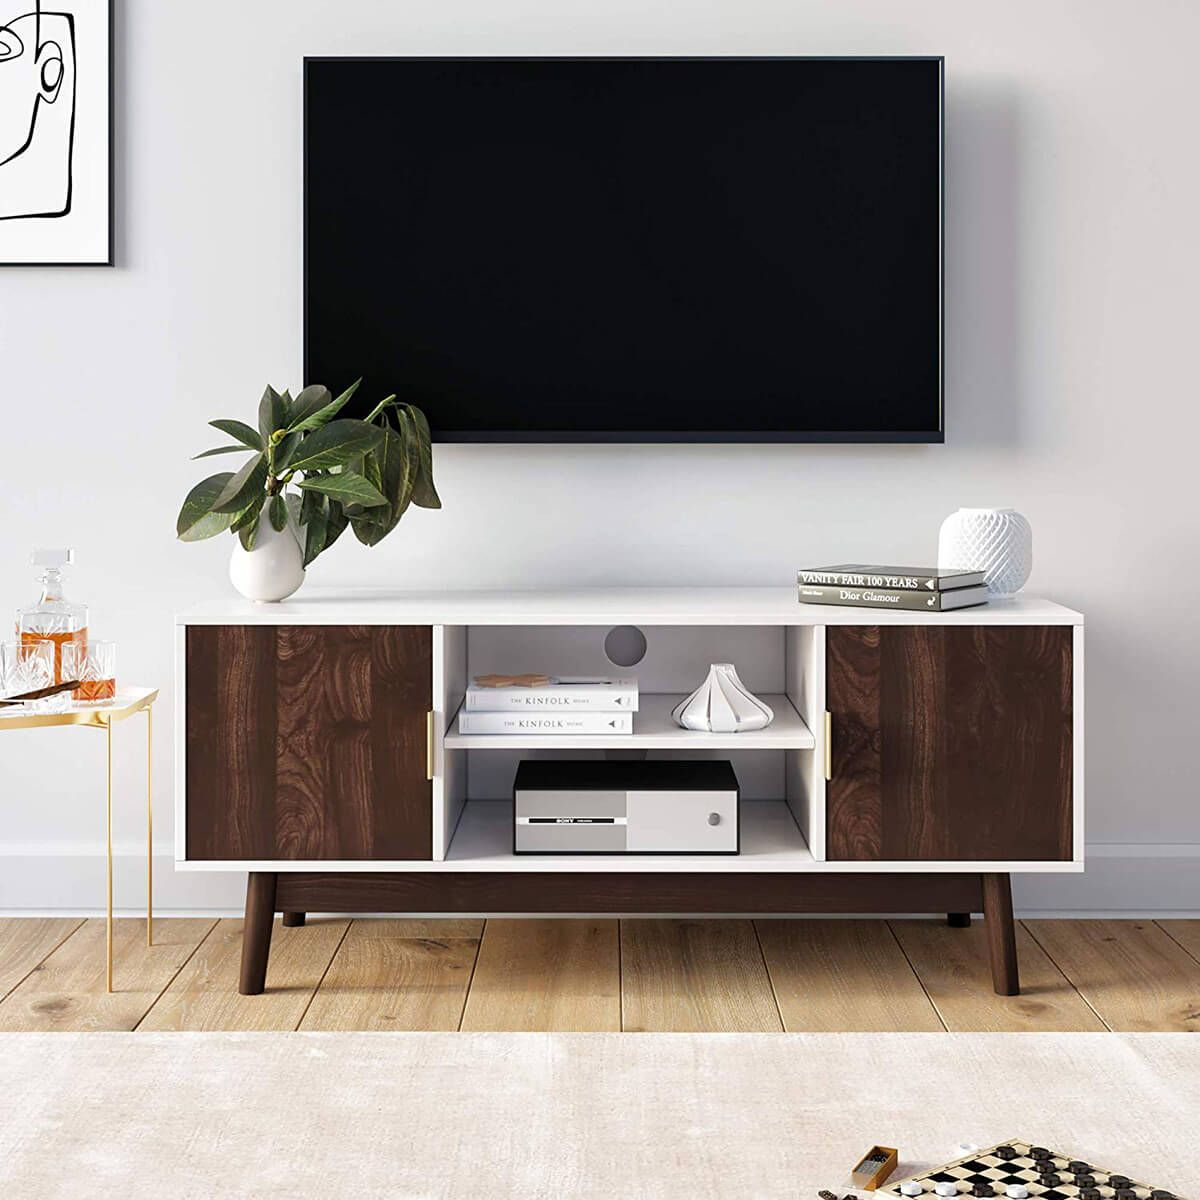 16 Stylish Scandinavian Living Room Ideas That Will Transform Your Space Living Room Tv Stand Living Room Scandinavian Scandinavian Tv Stand